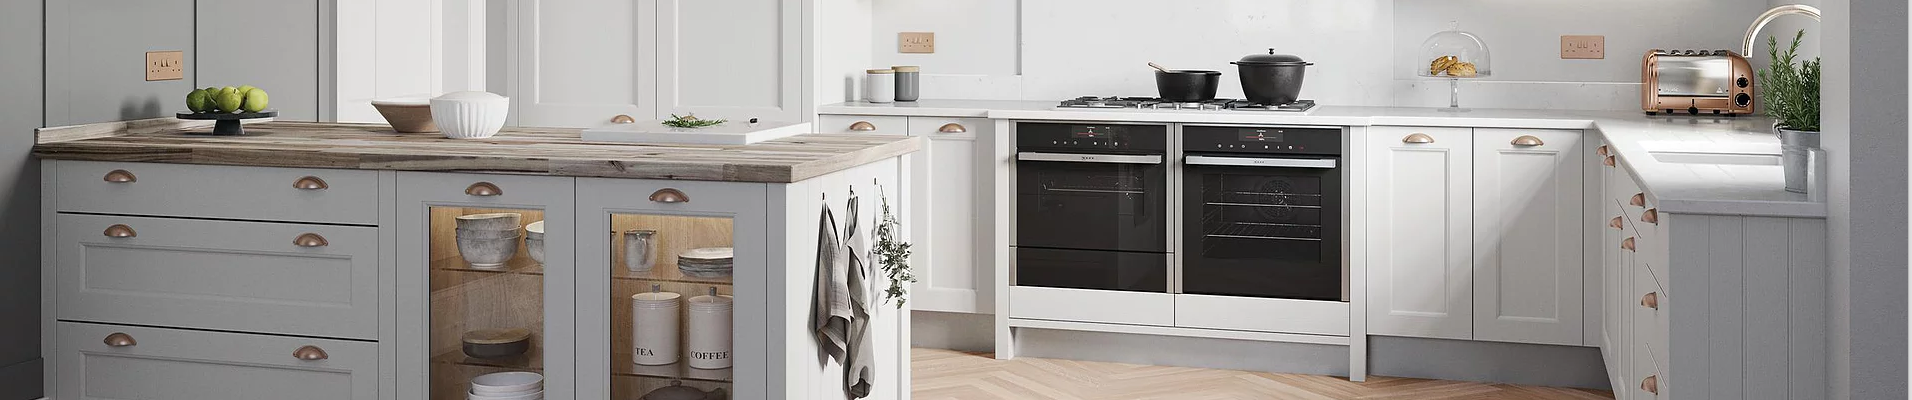 Cabinet Manufacture Manchester